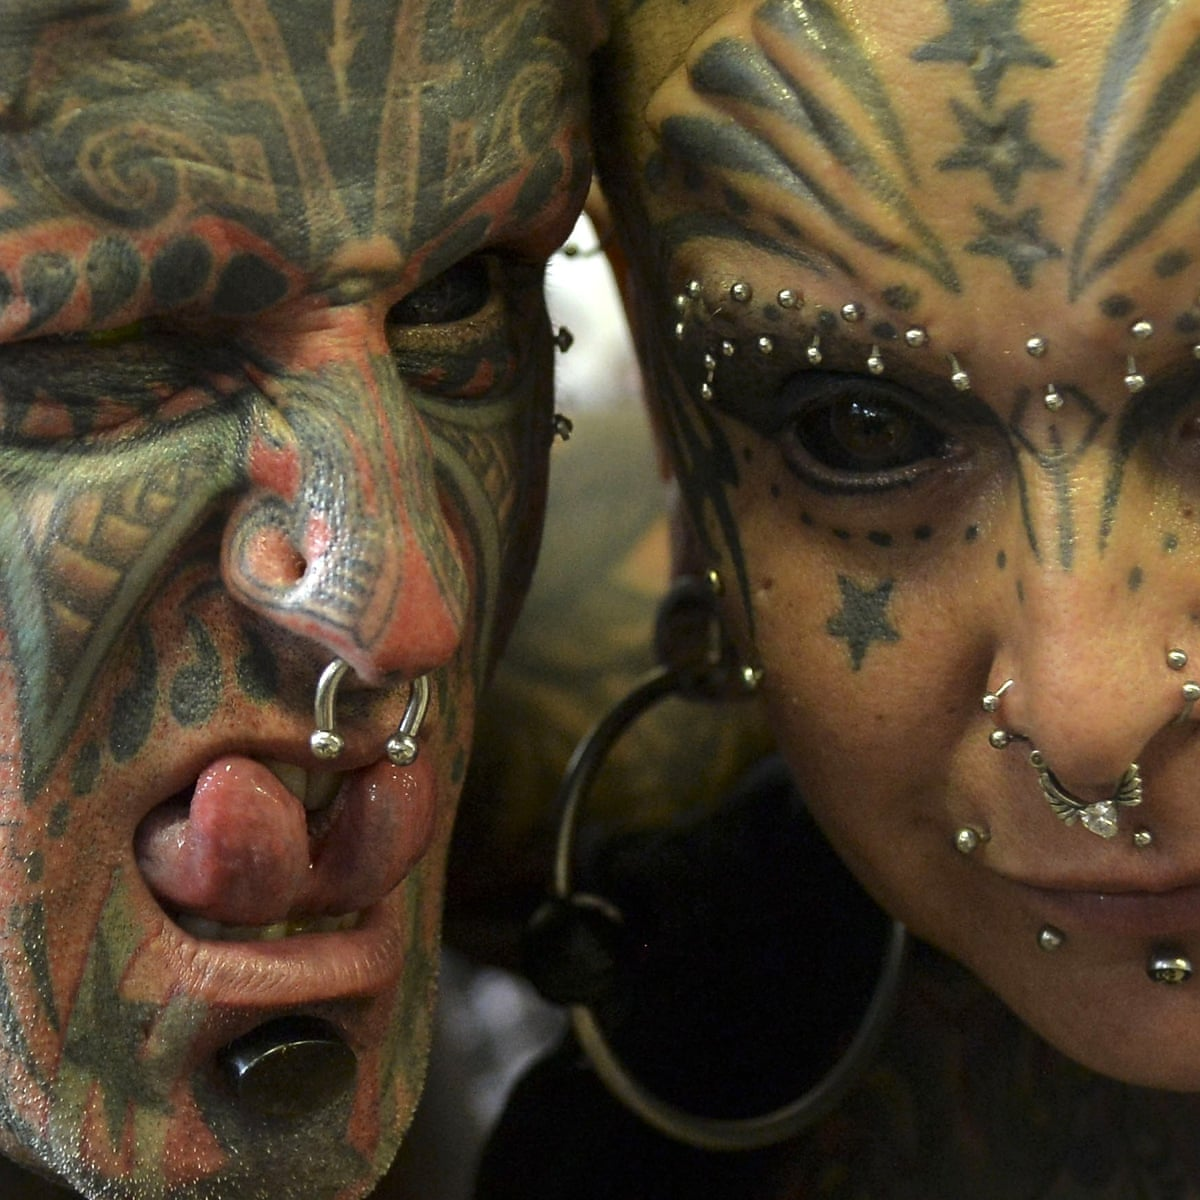 Forked Tongues And Tattooed Eyeballs Should Body Modification Be Regulated Fashion The Guardian